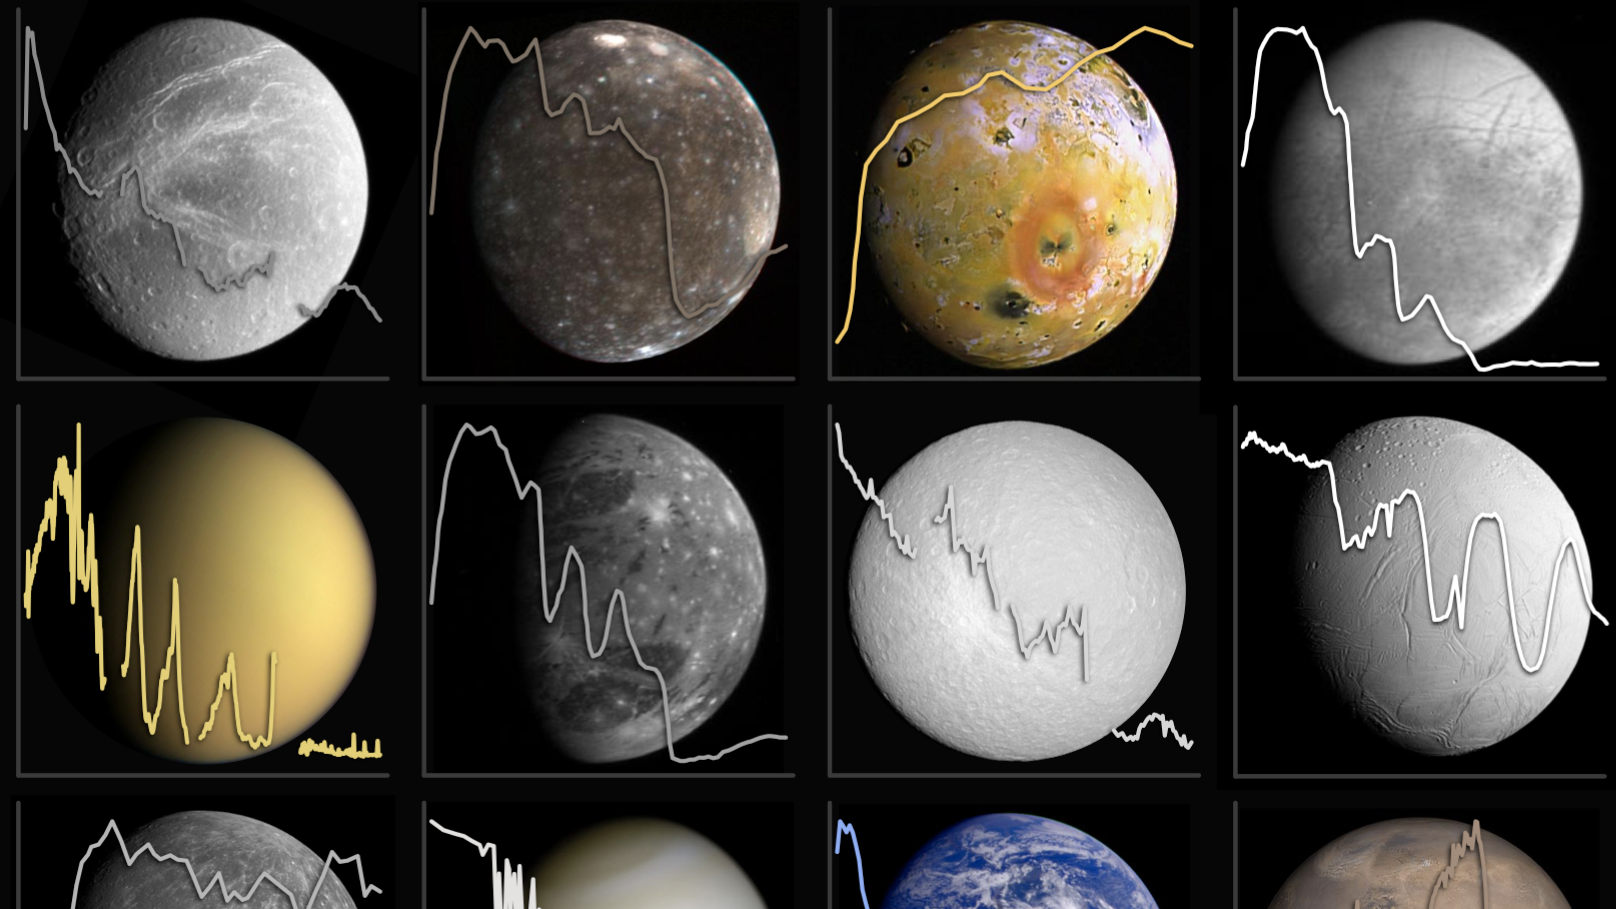 This Solar System Catalogue Could Be Key To Finding An Earth-Like Exoplanet